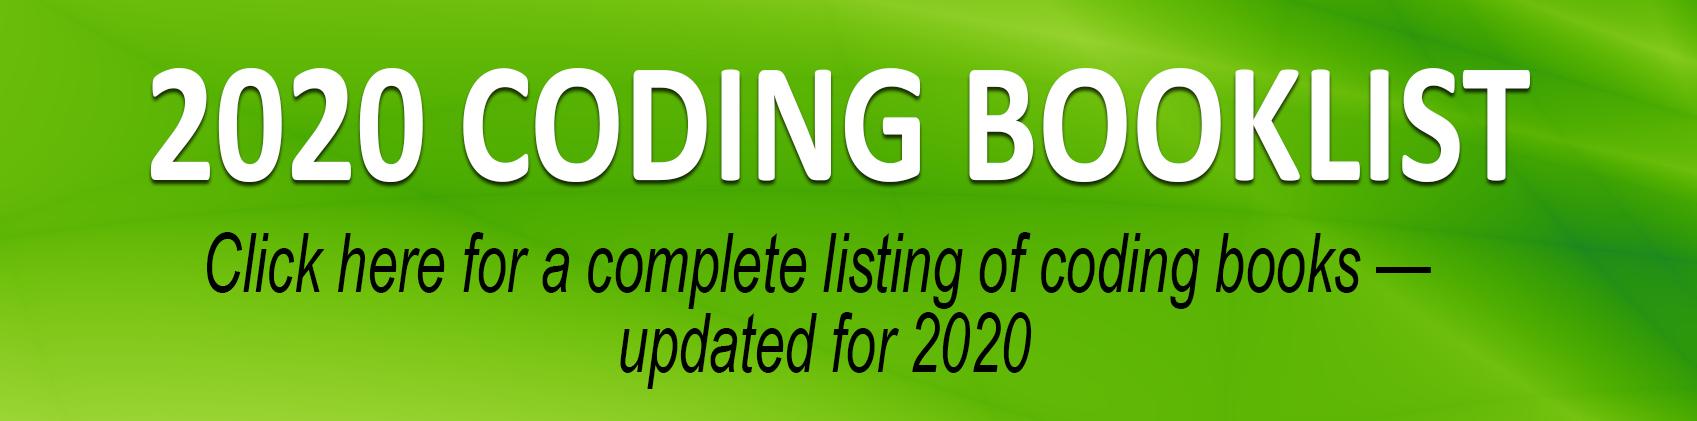 Coding Book List 2020